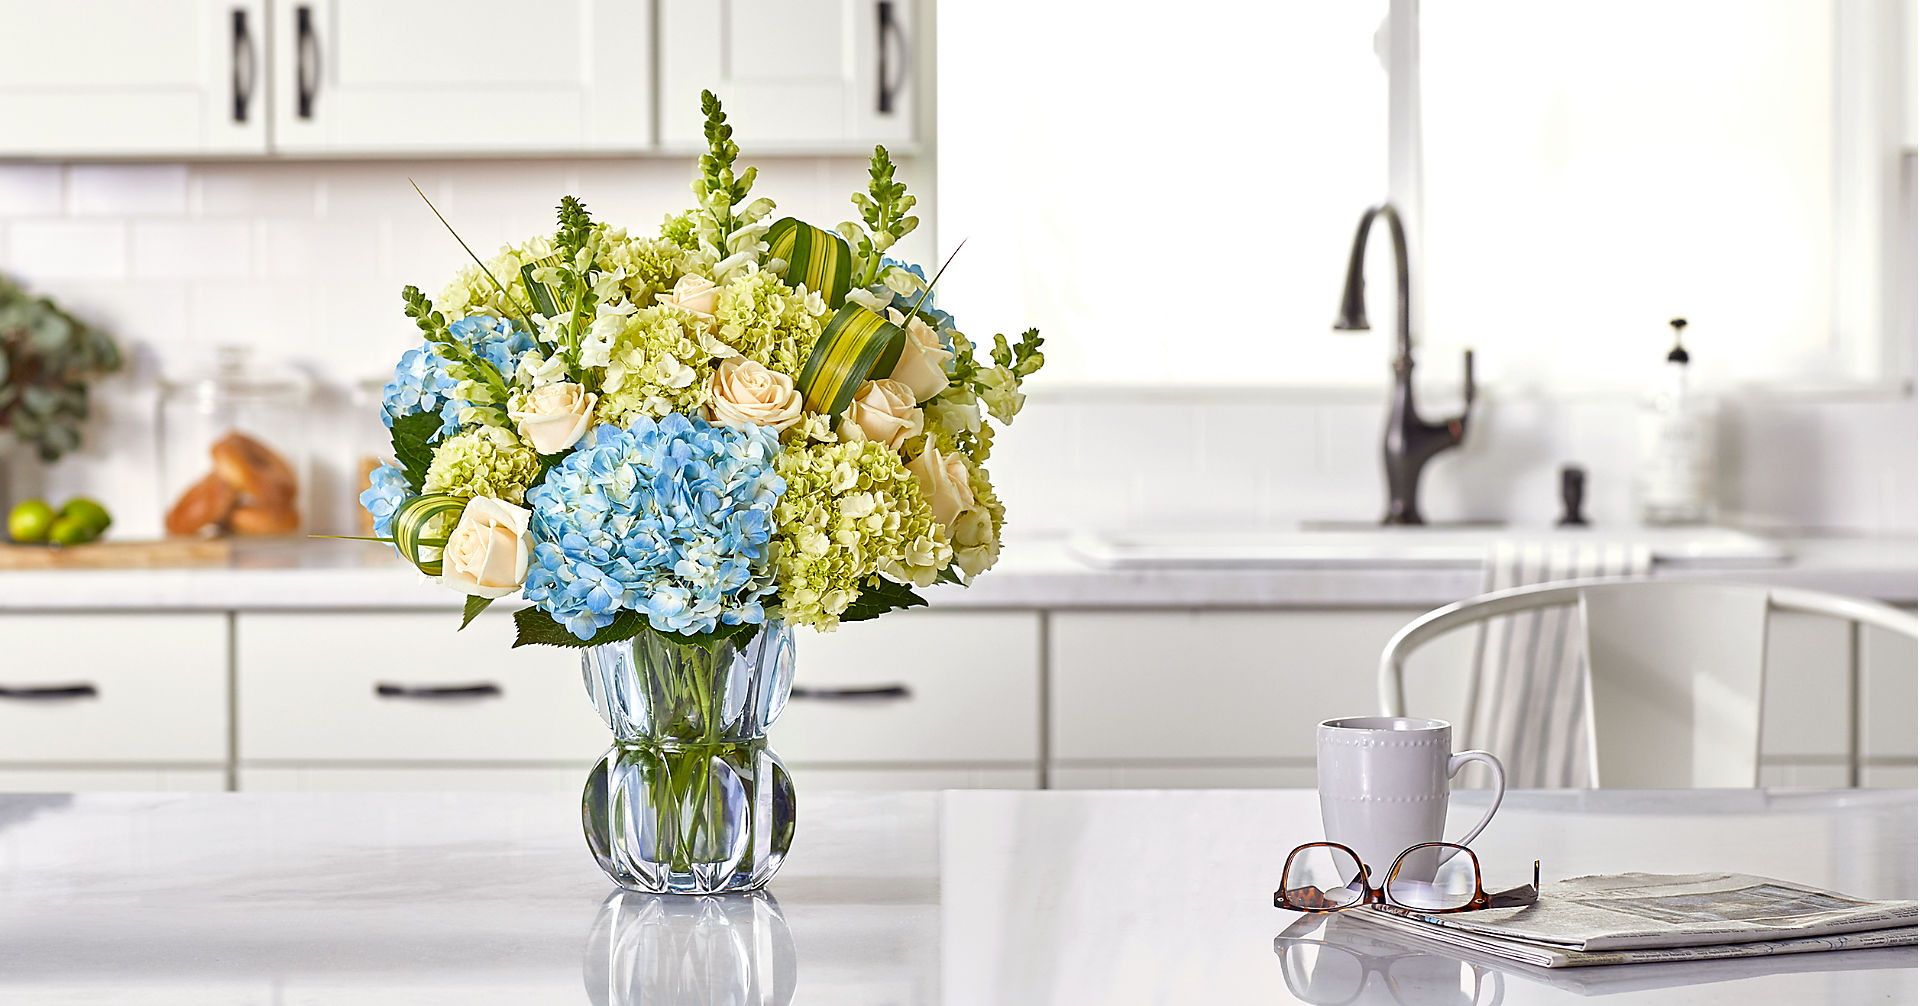 Superior Sights™ Luxury Bouquet - Blue & White - Image 5 Of 5